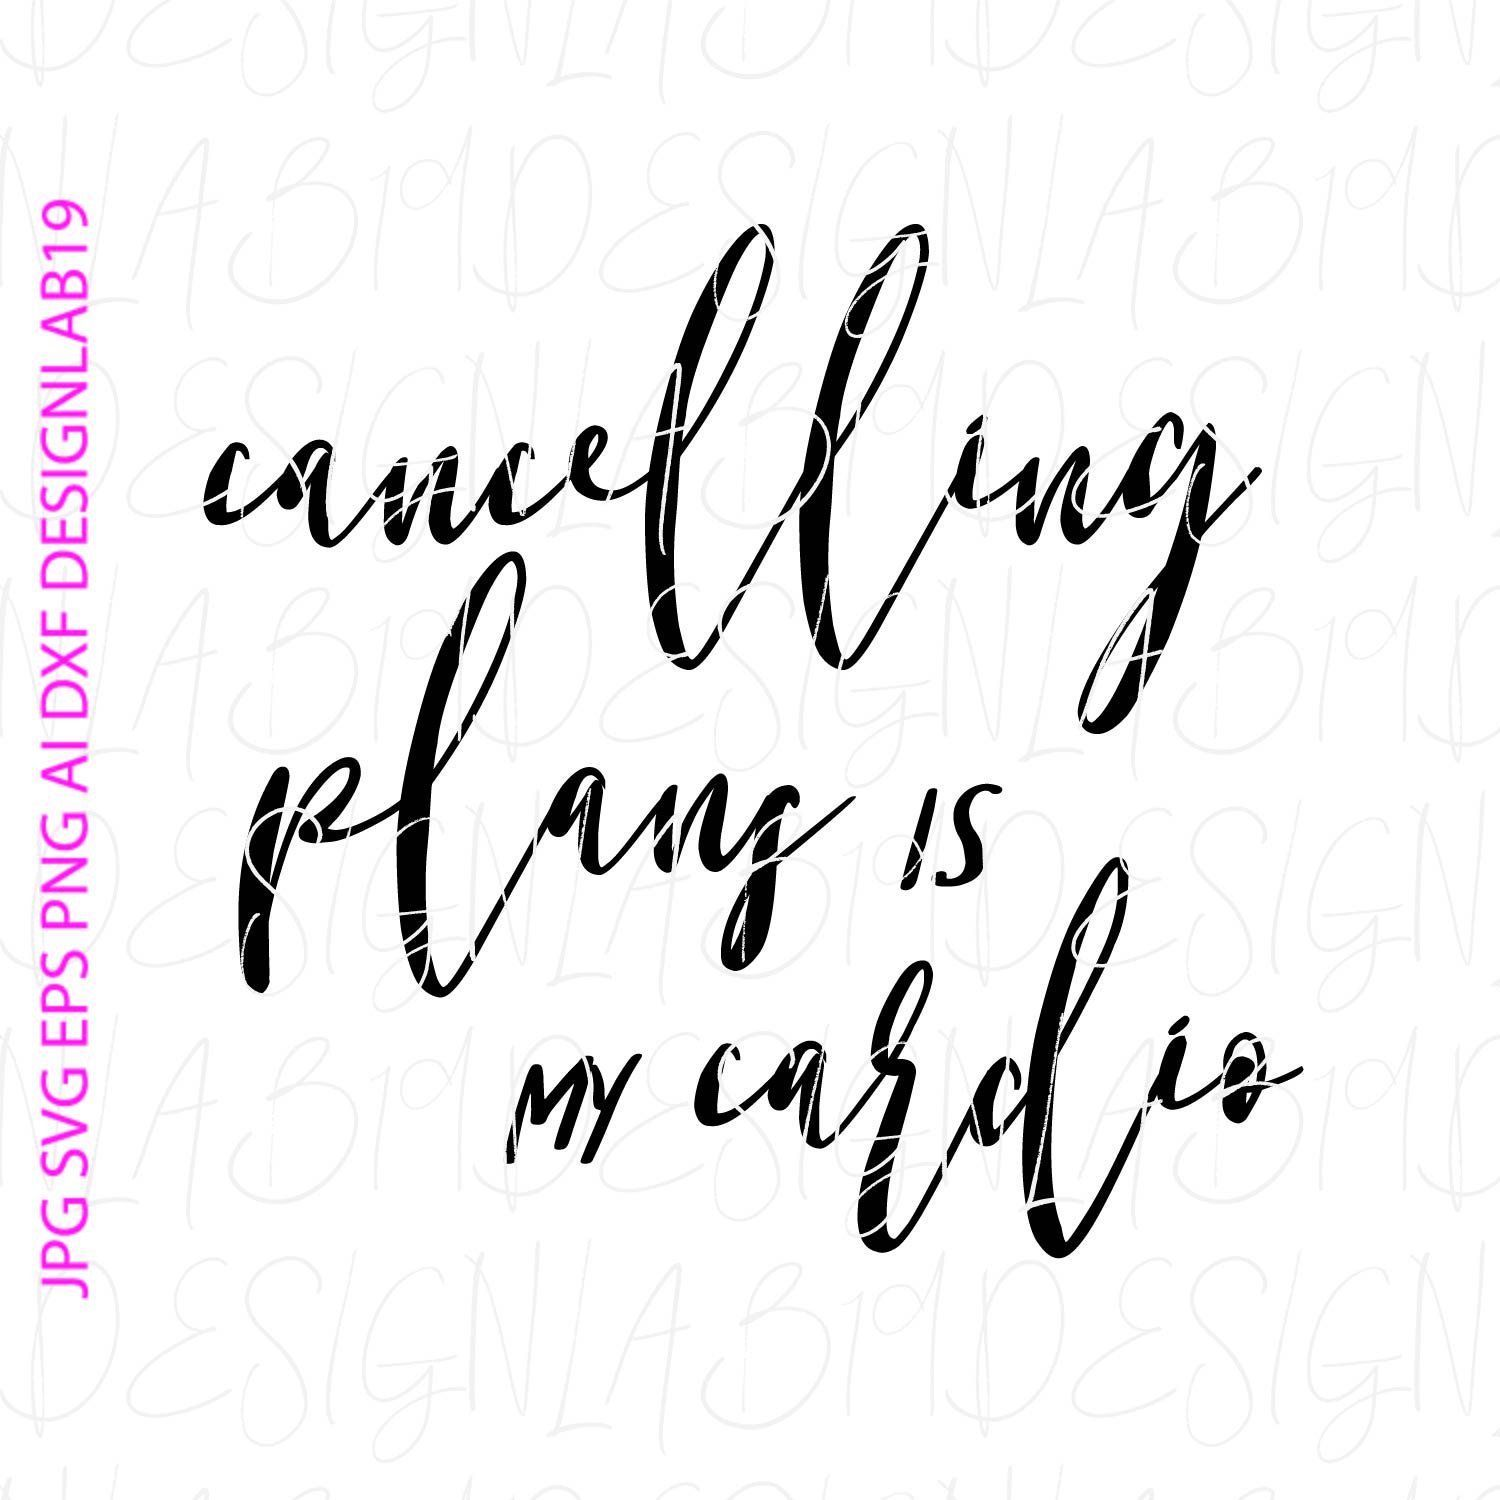 cancelling plans is my cardio svg funny humor comedy comical lol phrase gym fitness crossfit lazy ex...